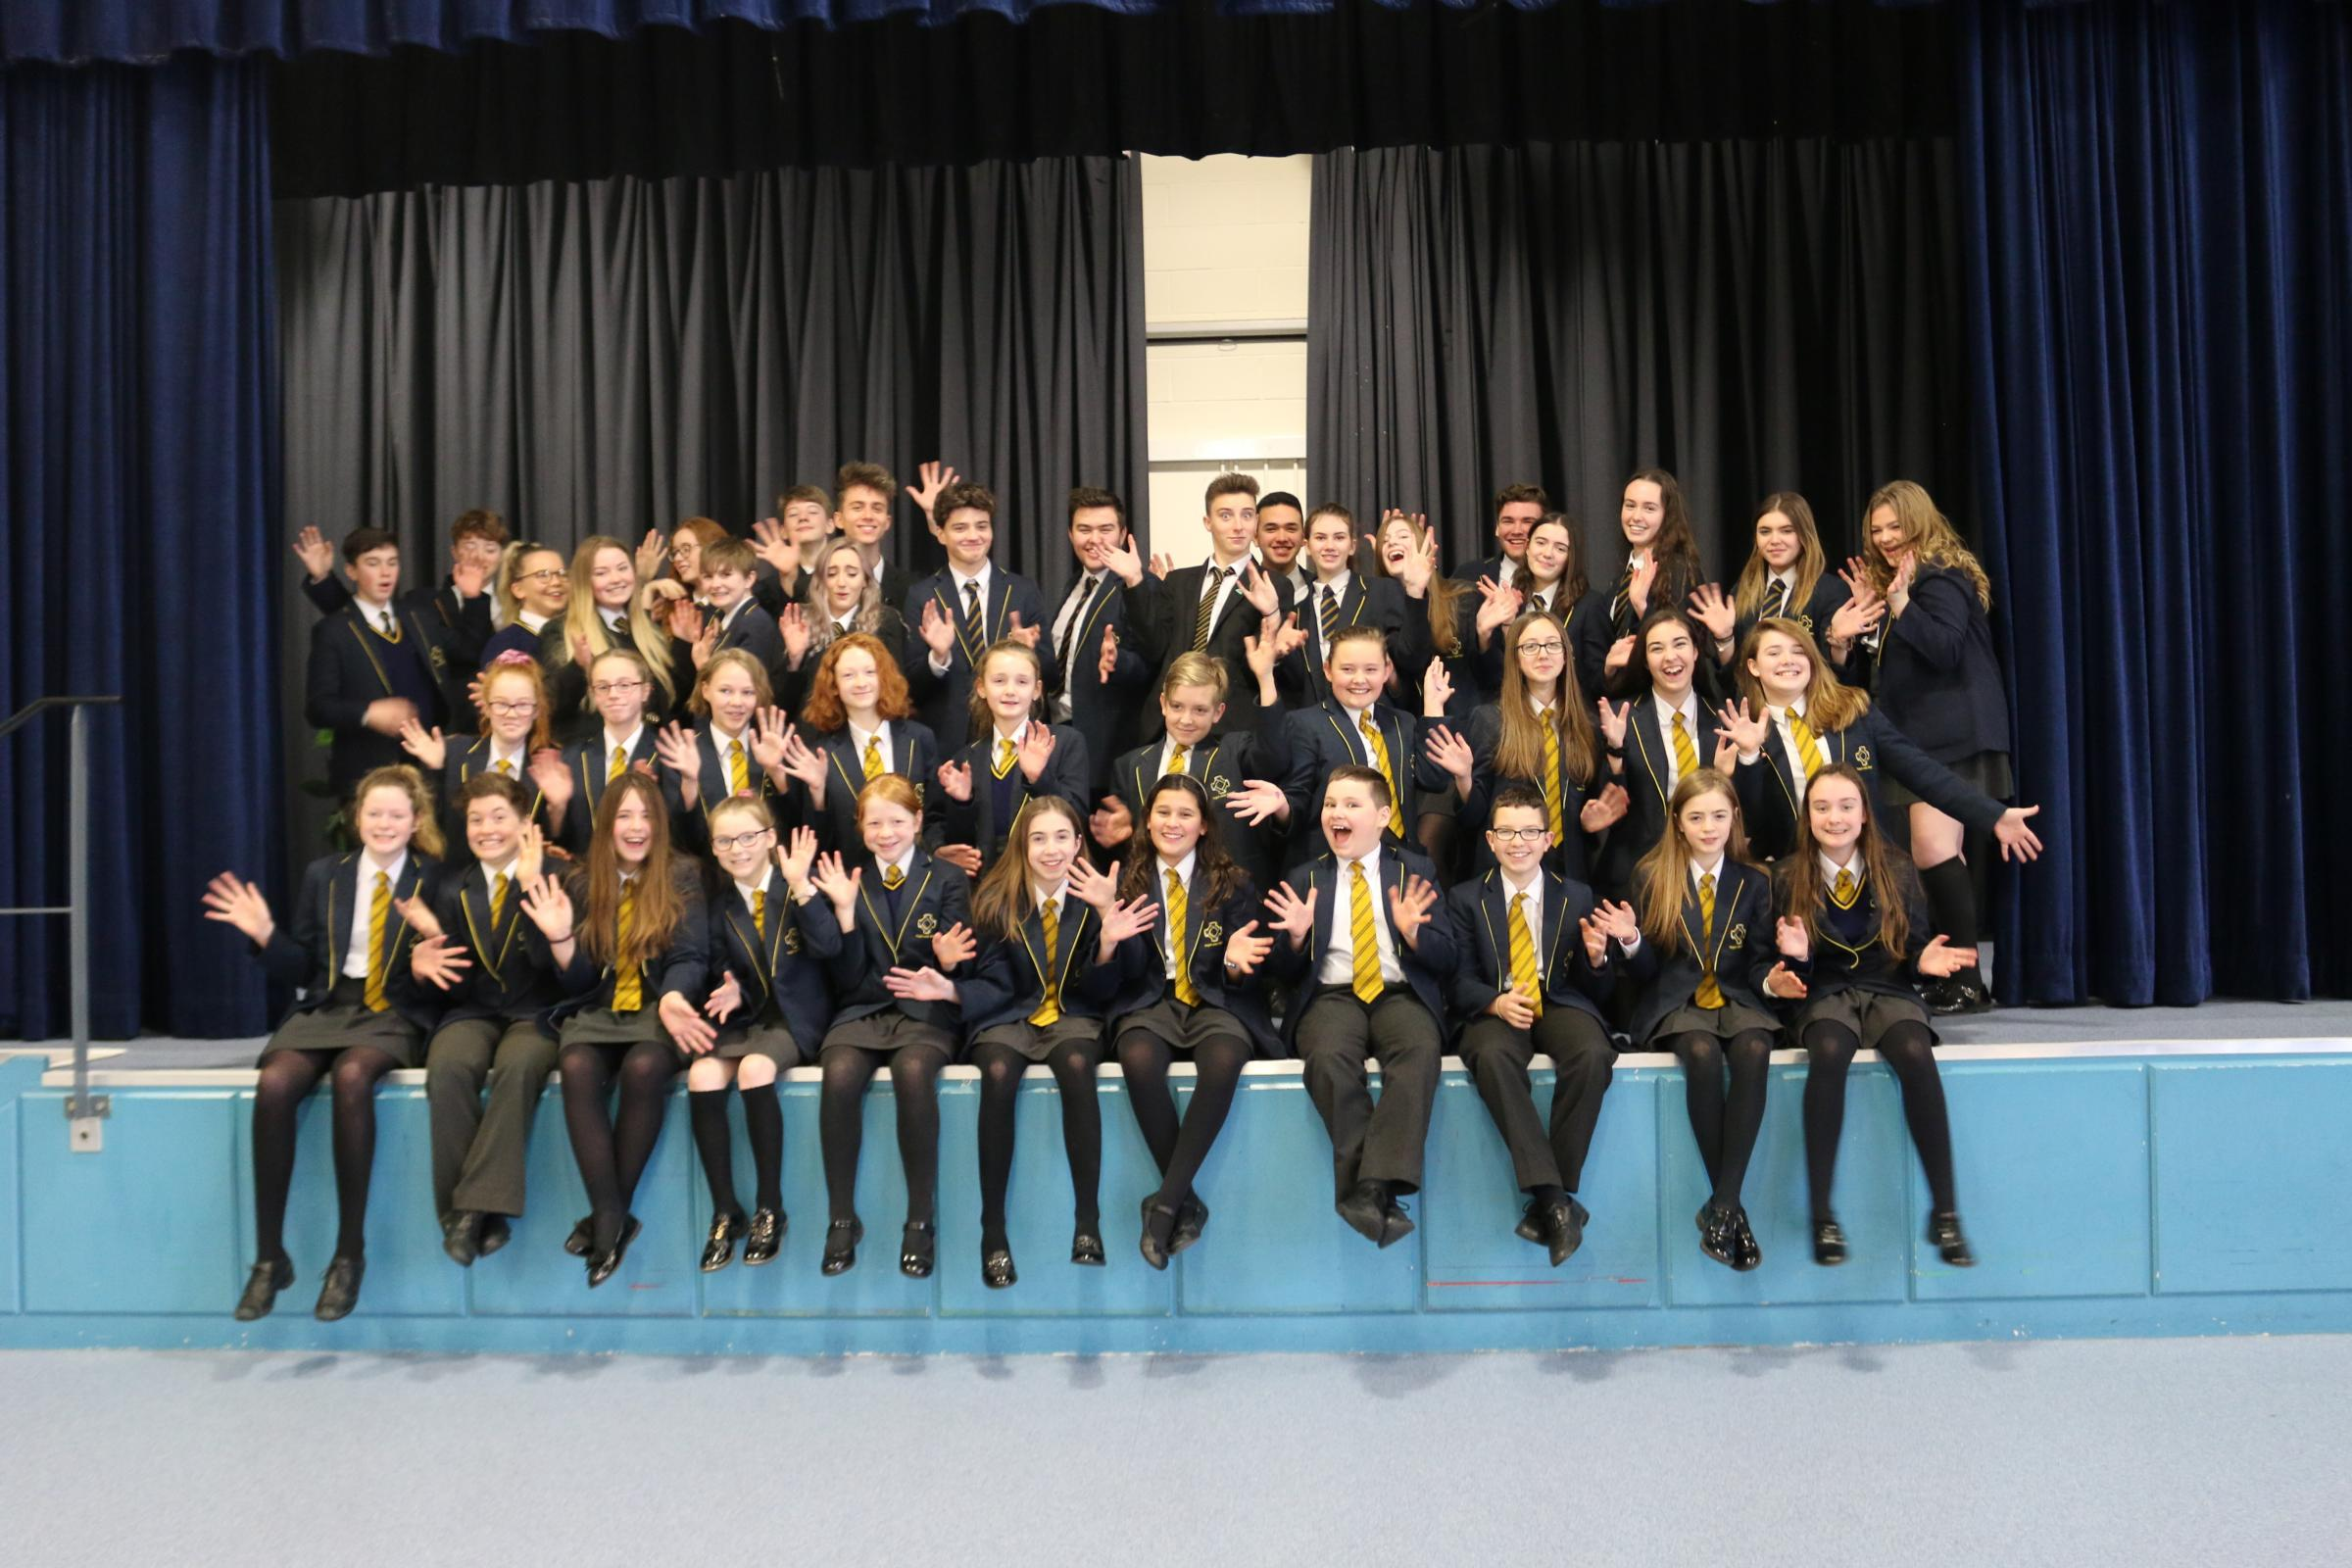 The cast of Ysgol John Bright's production of Guys and Dolls